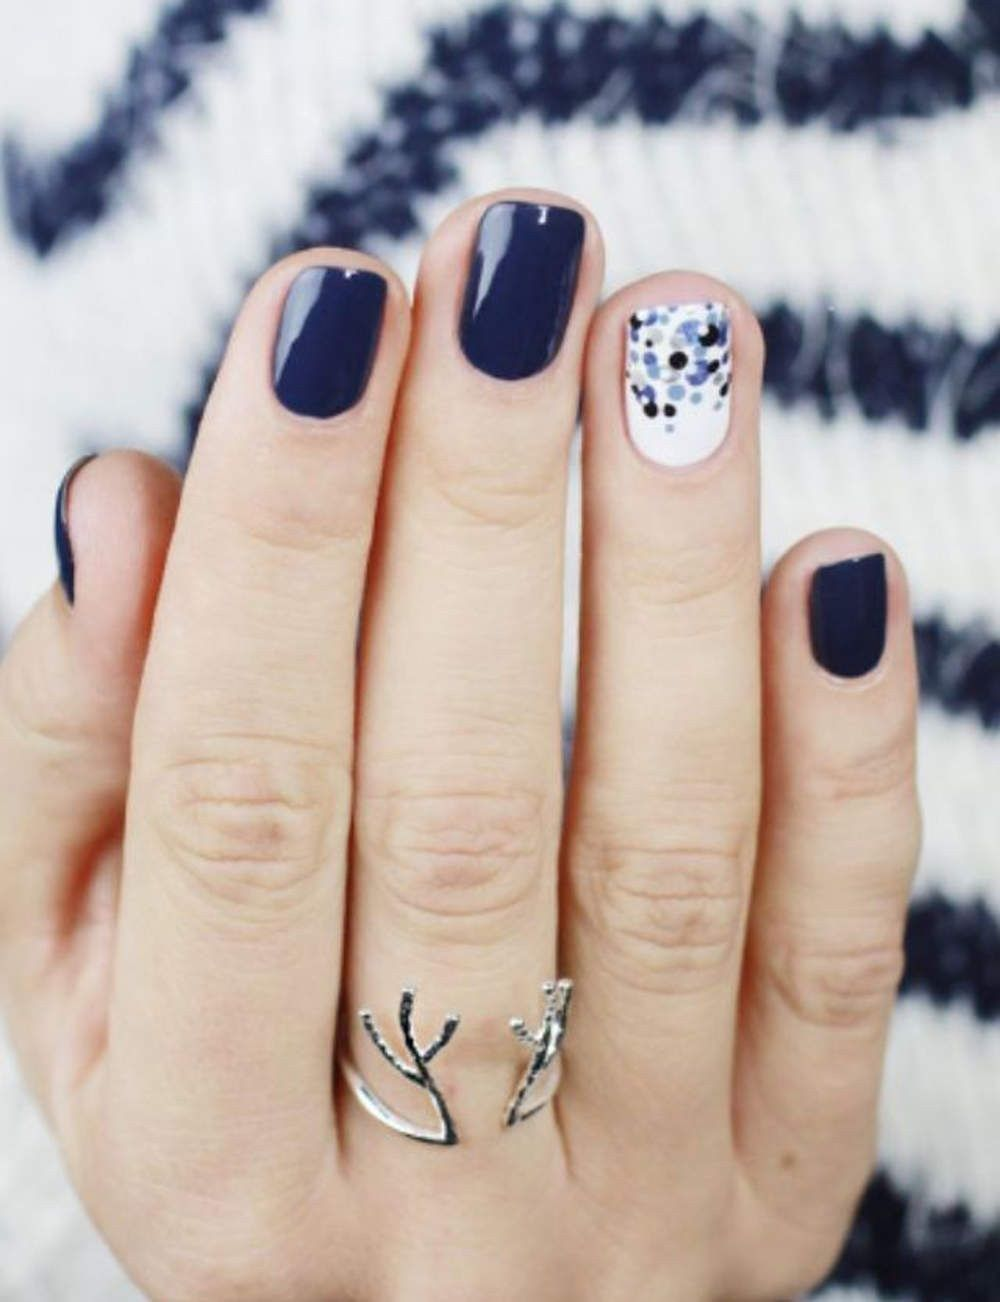 Brilliant And Stunning Winter Nail Art Design Ideas You Must